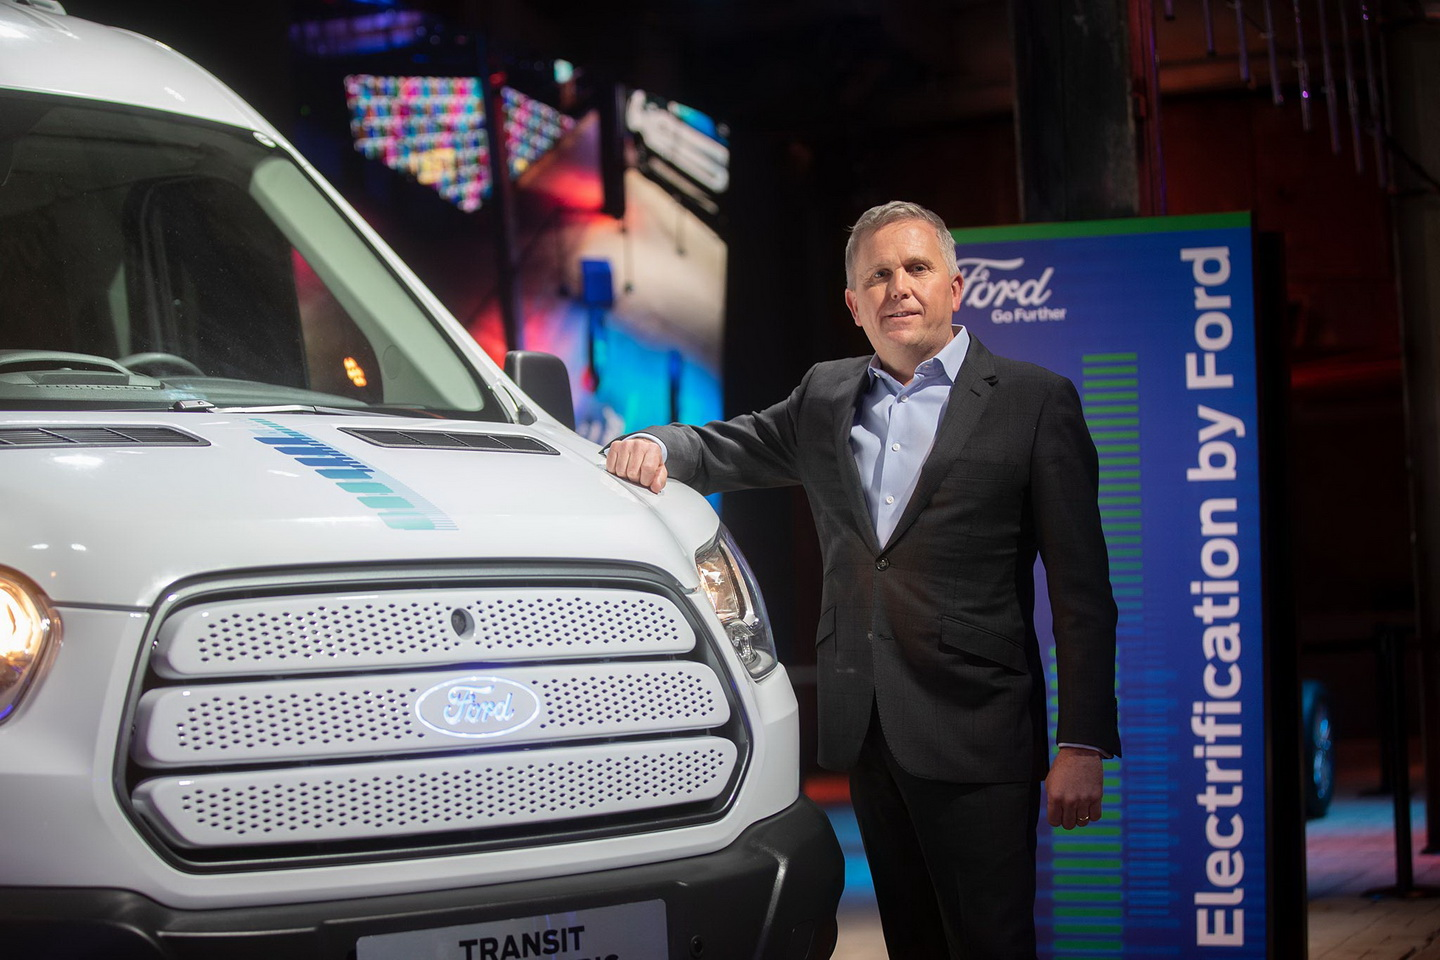 Ford Go Further 2019 event hybrid cars 37